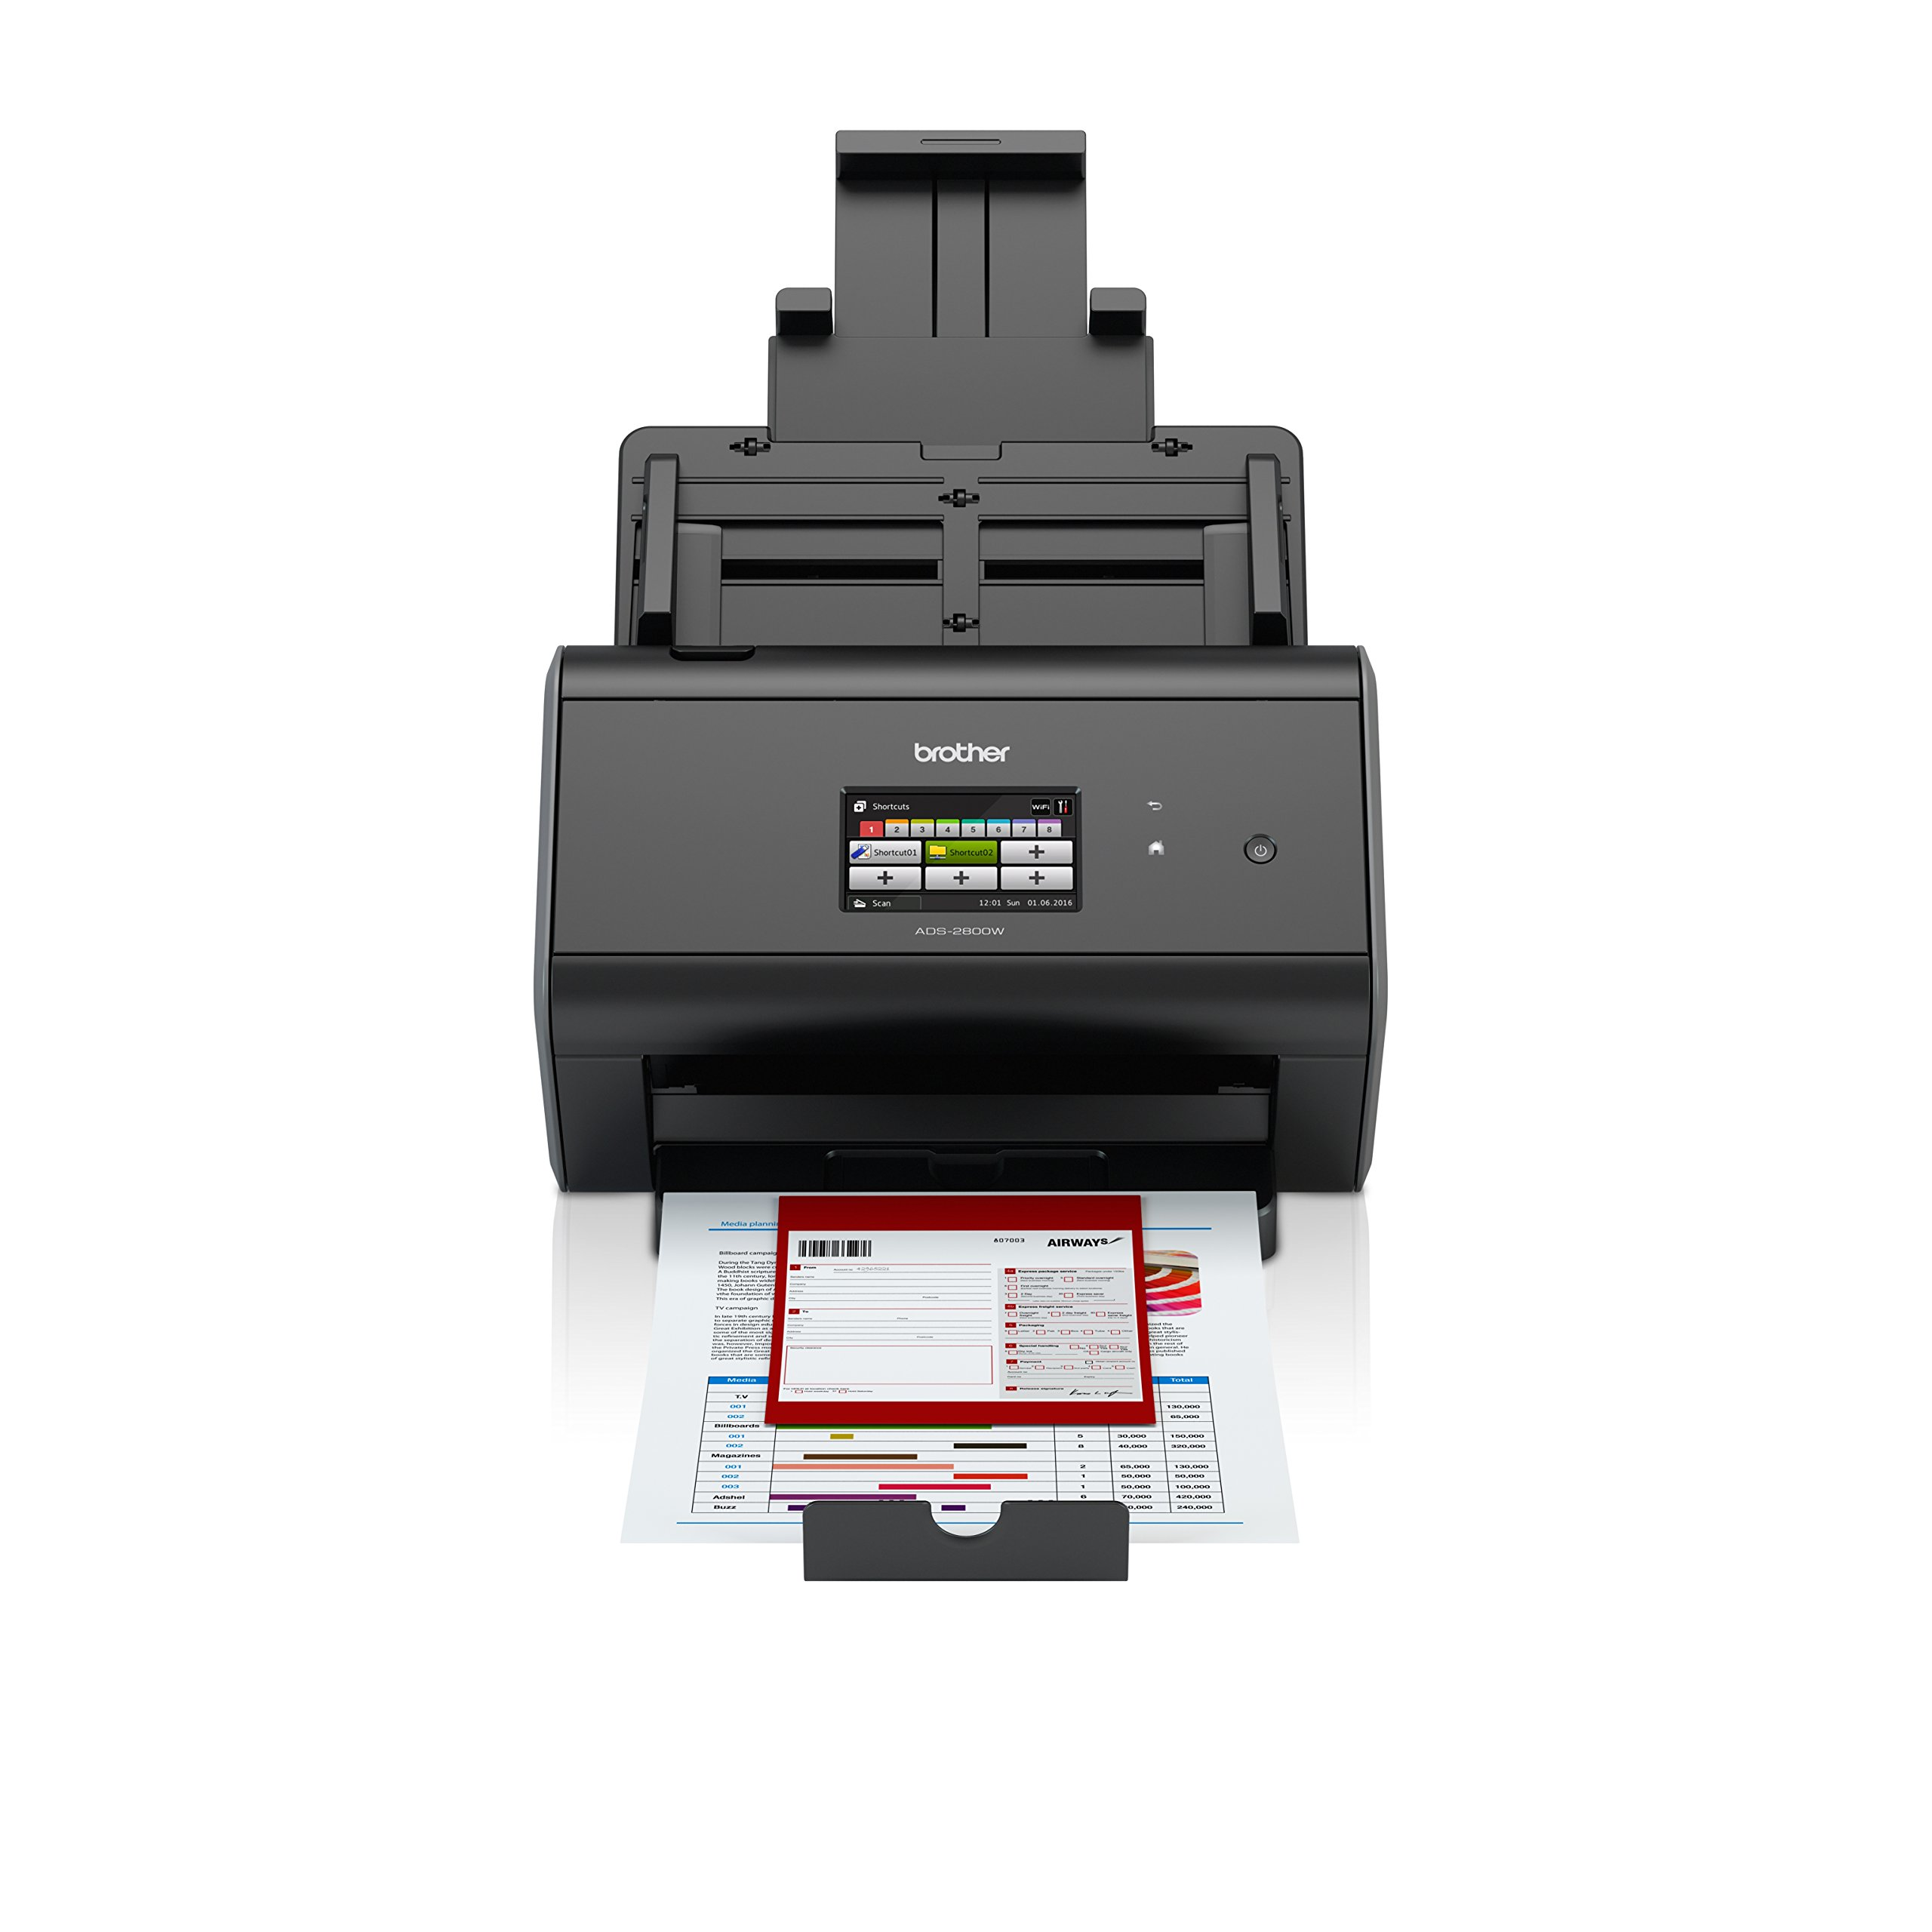 Brother ImageCenter ADS-2800W Wireless Document Scanner, Multi-Page Scanning, Color Touchscreen, Integrated Image Optimization, High-Precision Scanning, Continuous Scan Mode